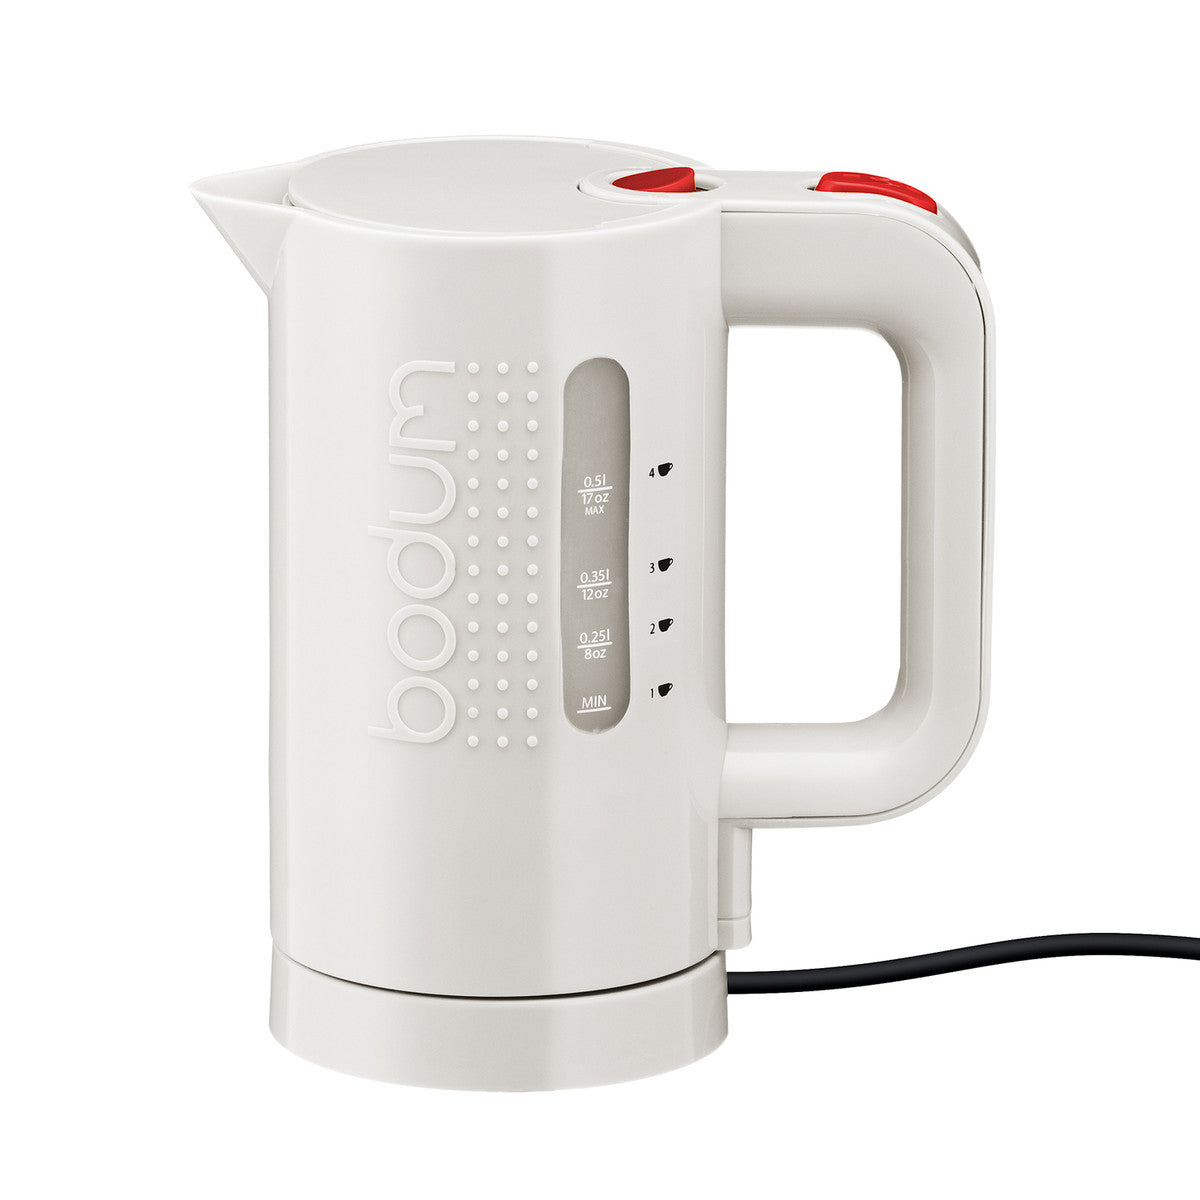 Bodum BISTRO Electric Water Kettle 17 oz. - White